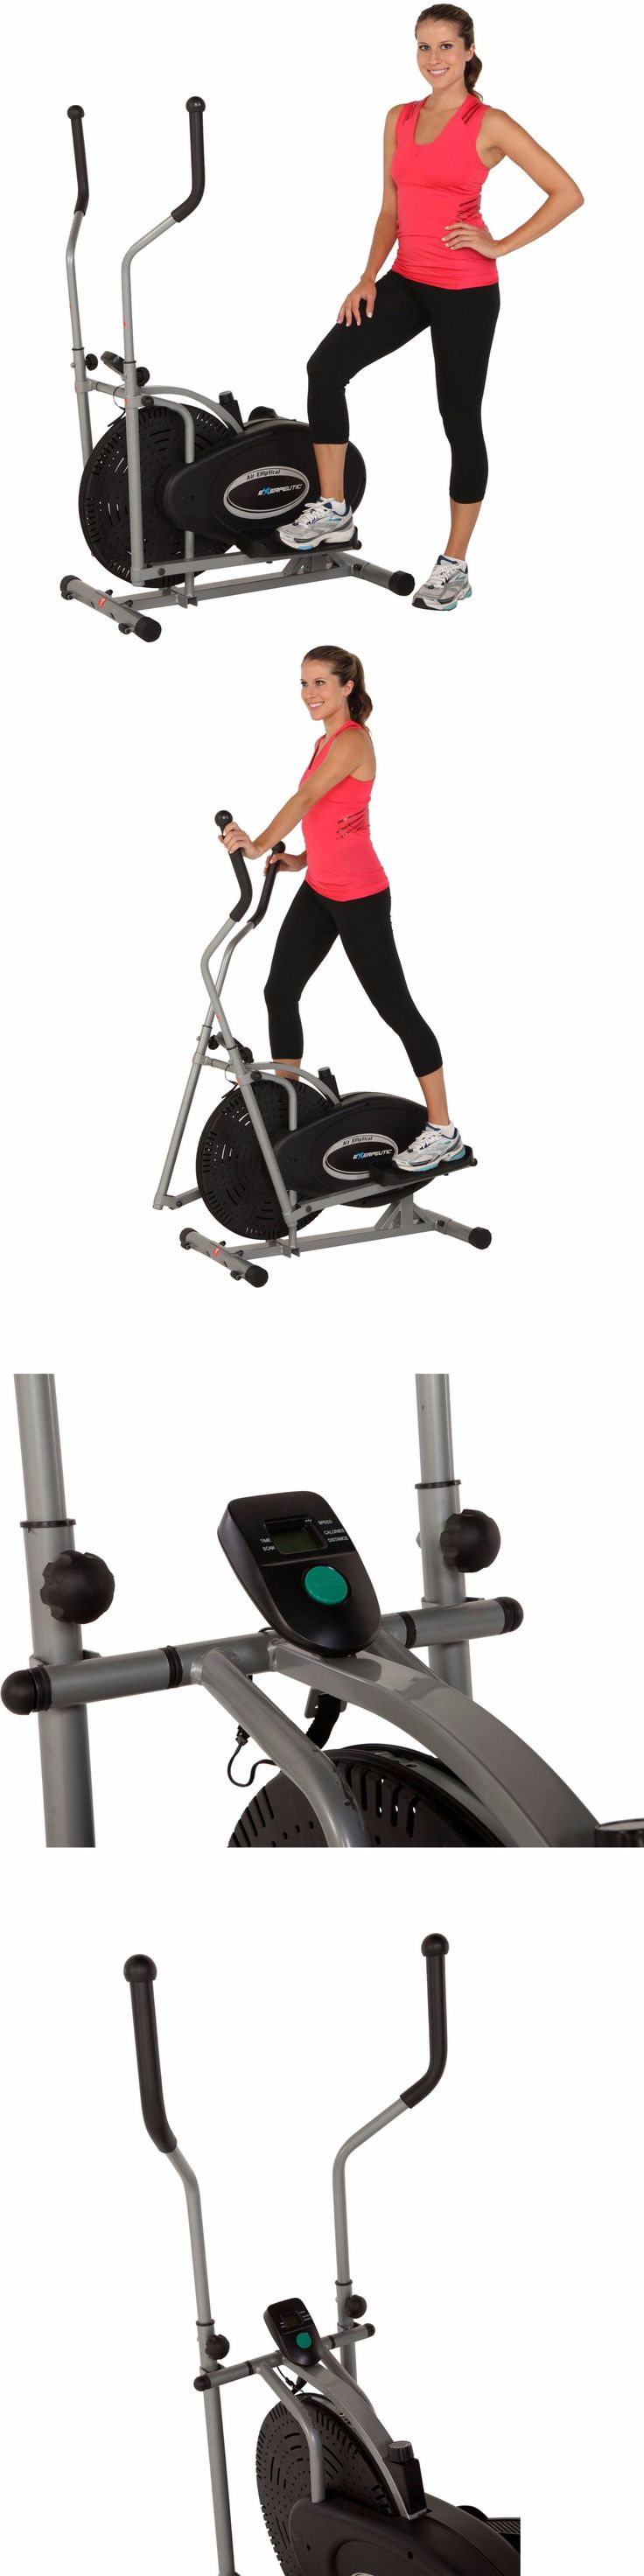 Ellipticals 72602: Elliptical Exercise Indoor Trainer Workout Machine Fitness Gym Equipment Cardio -> BUY IT NOW ONLY: $99.99 on eBay!